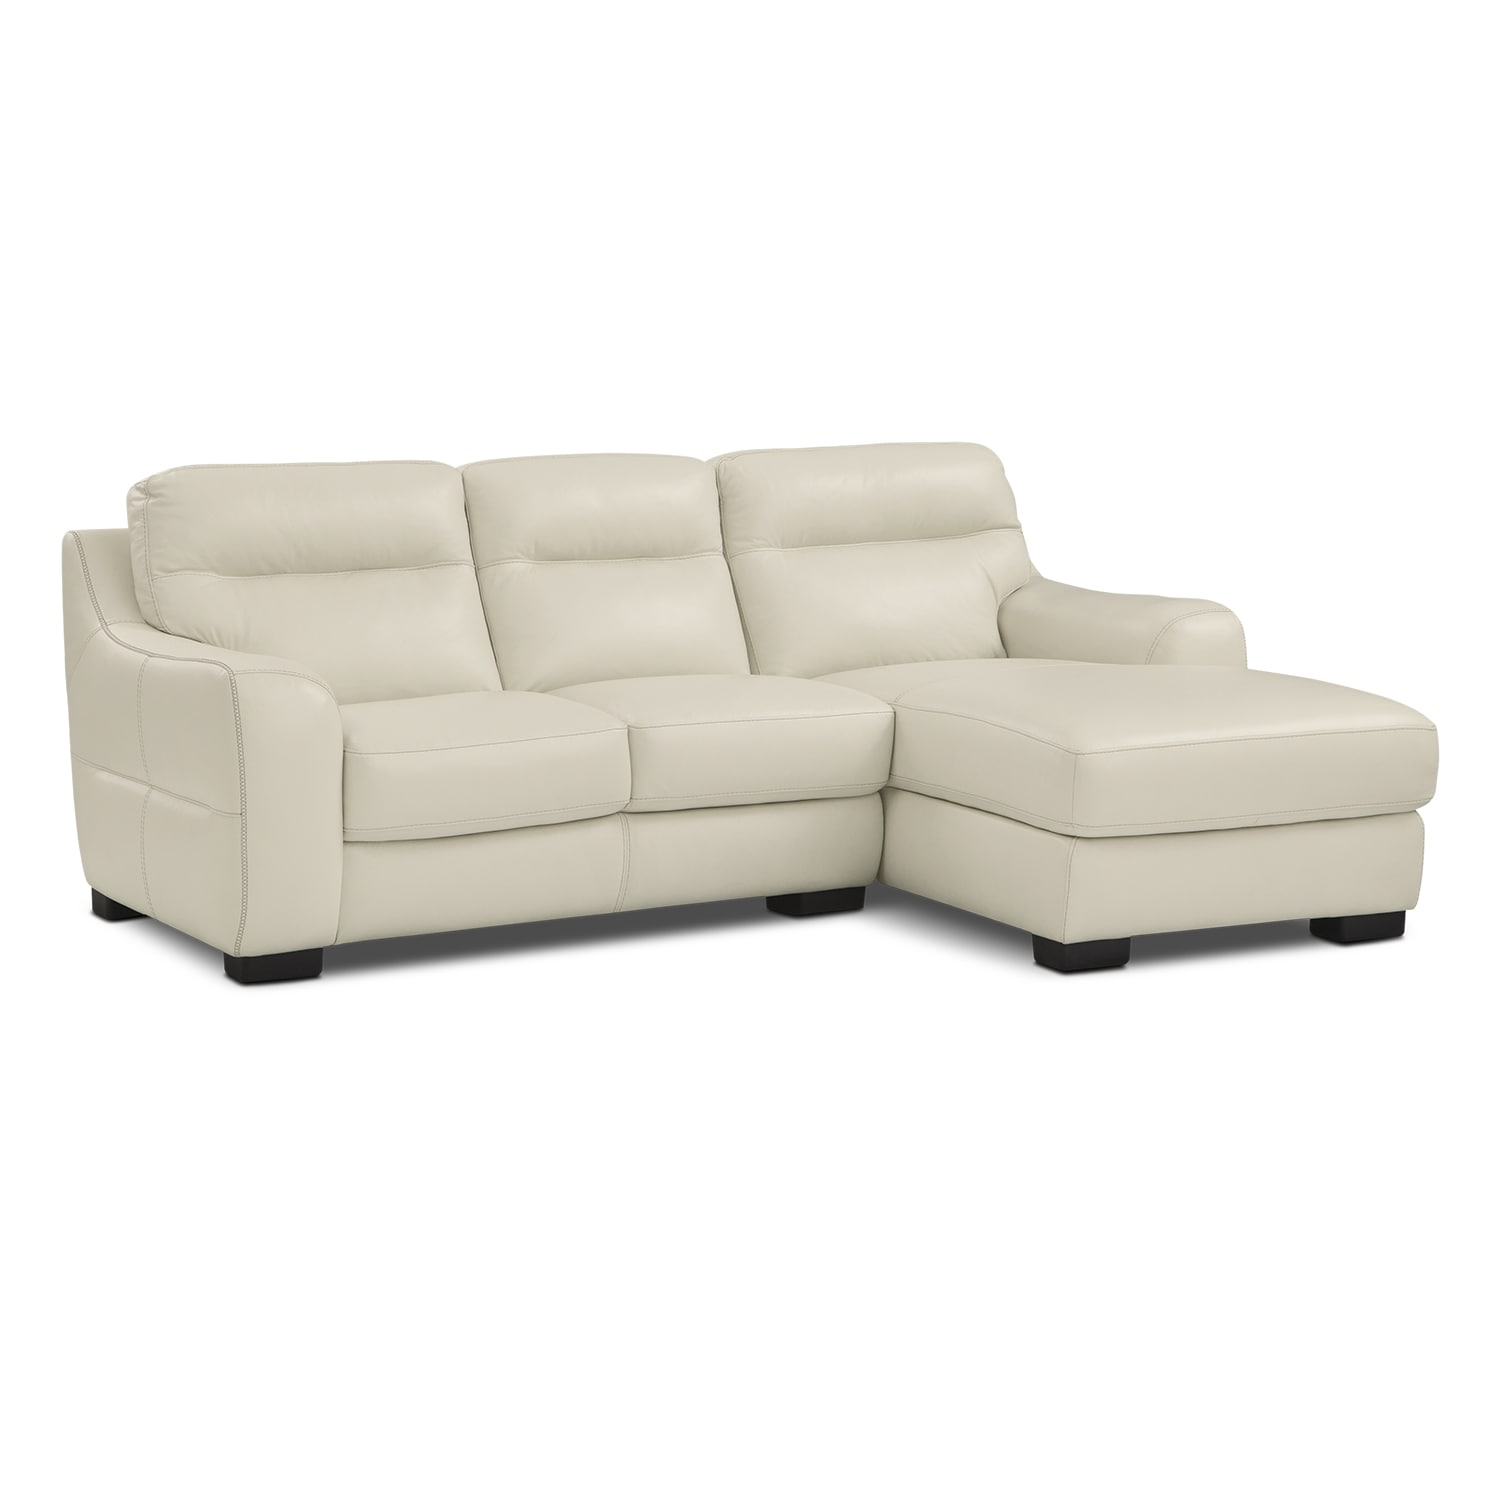 Rocco 2-Piece Sectional with Right-Facing Chaise - Snow